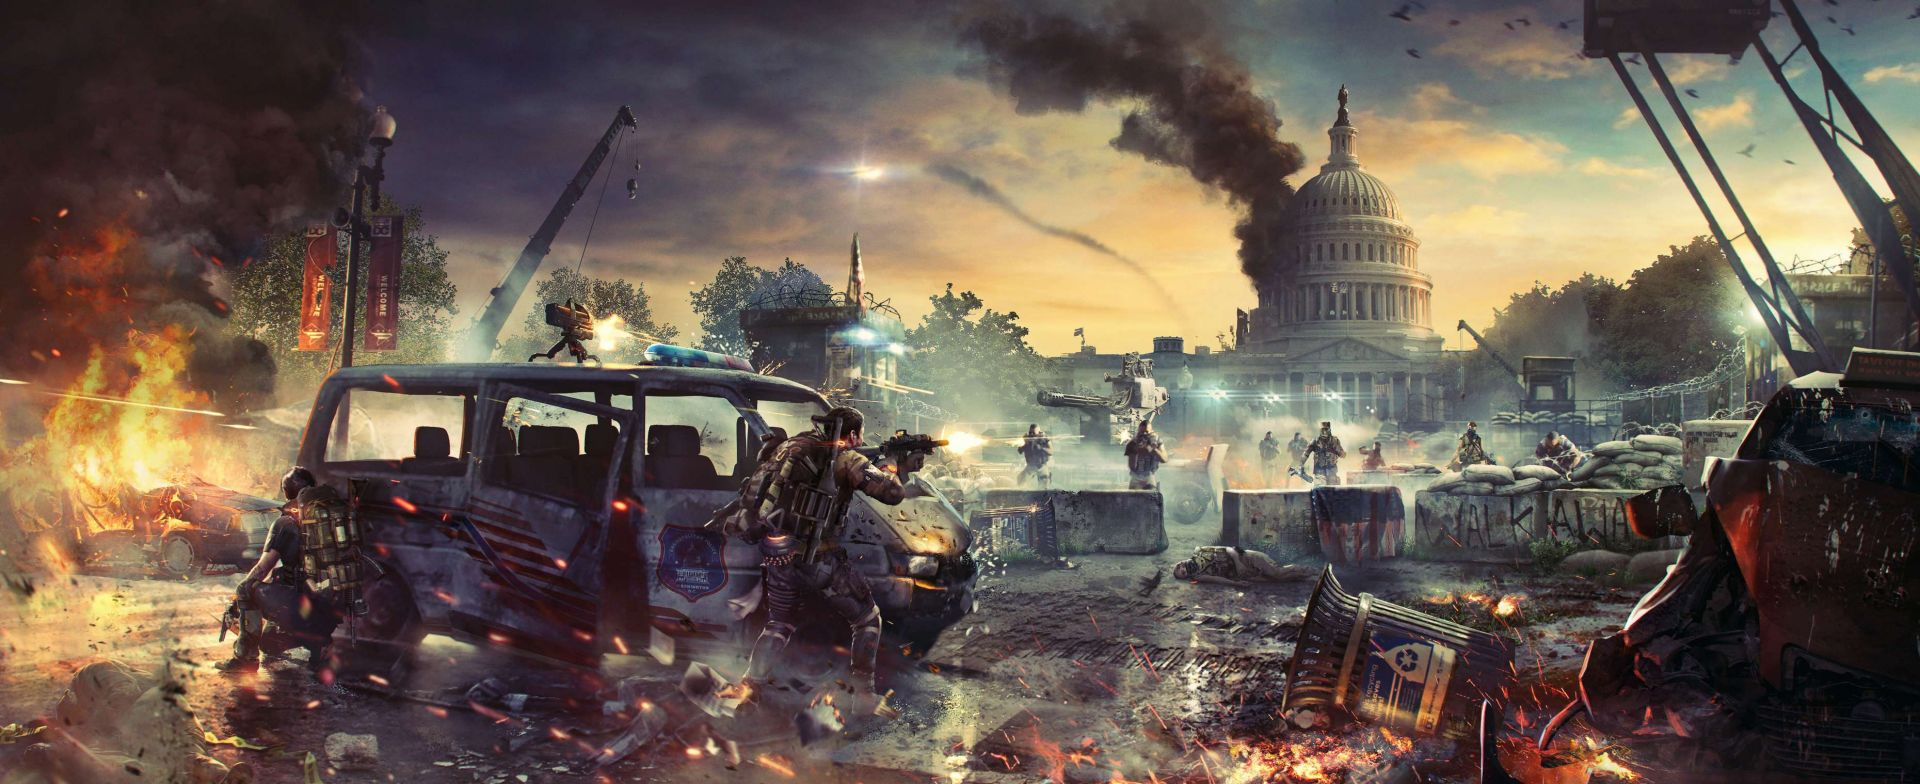 Tom Clancy's The Division 2 #8